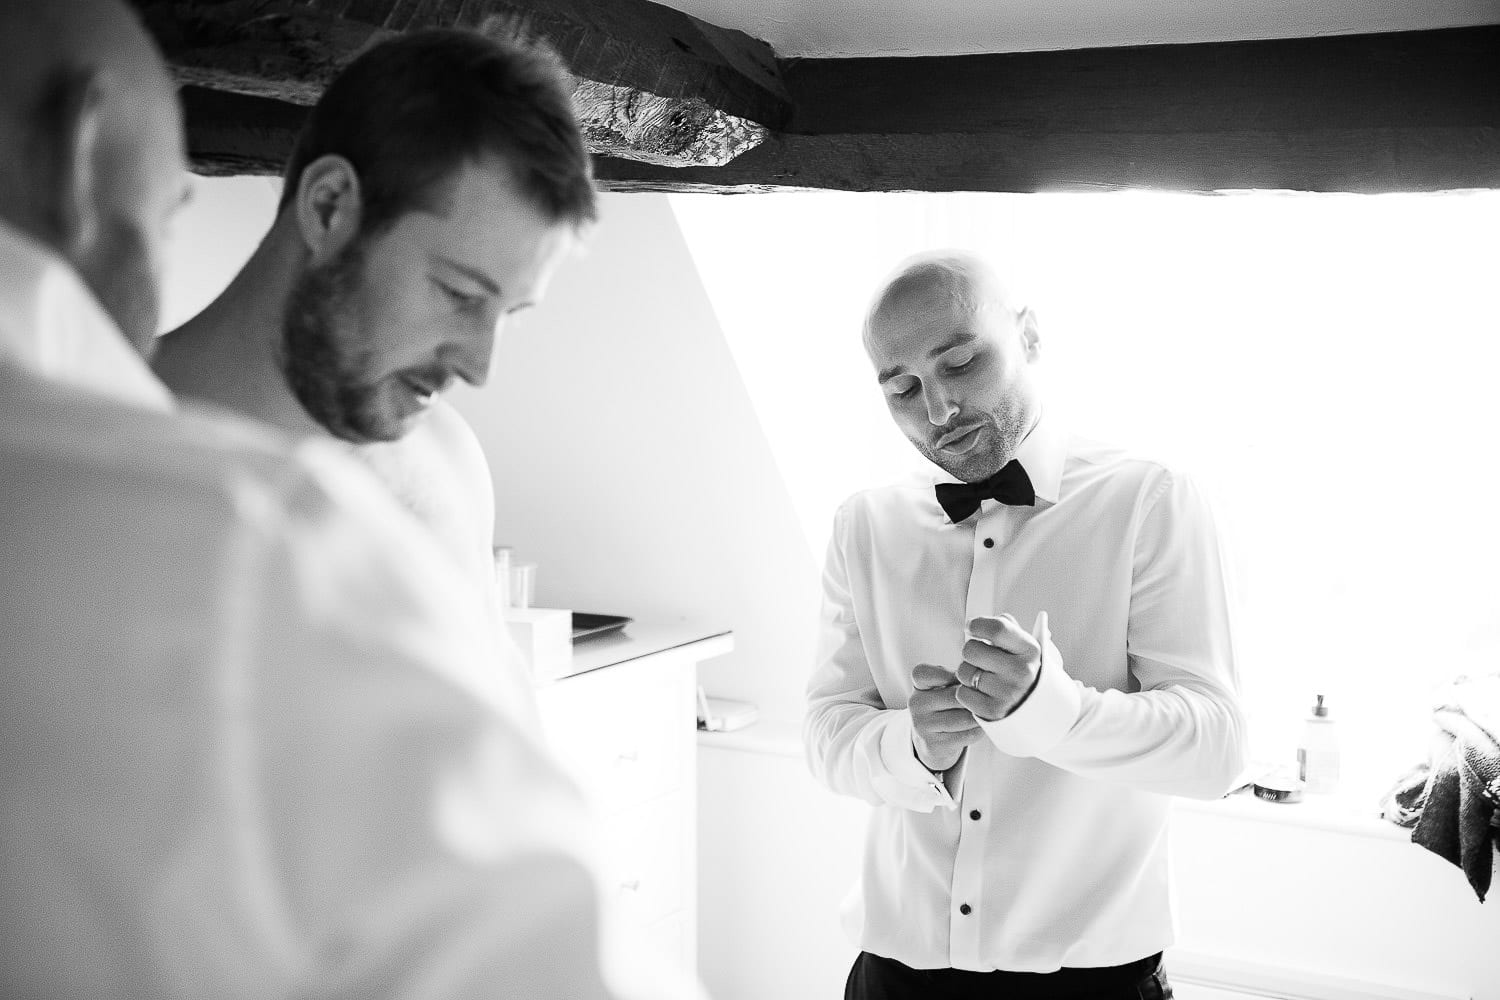 A best man doing his cufflinks up